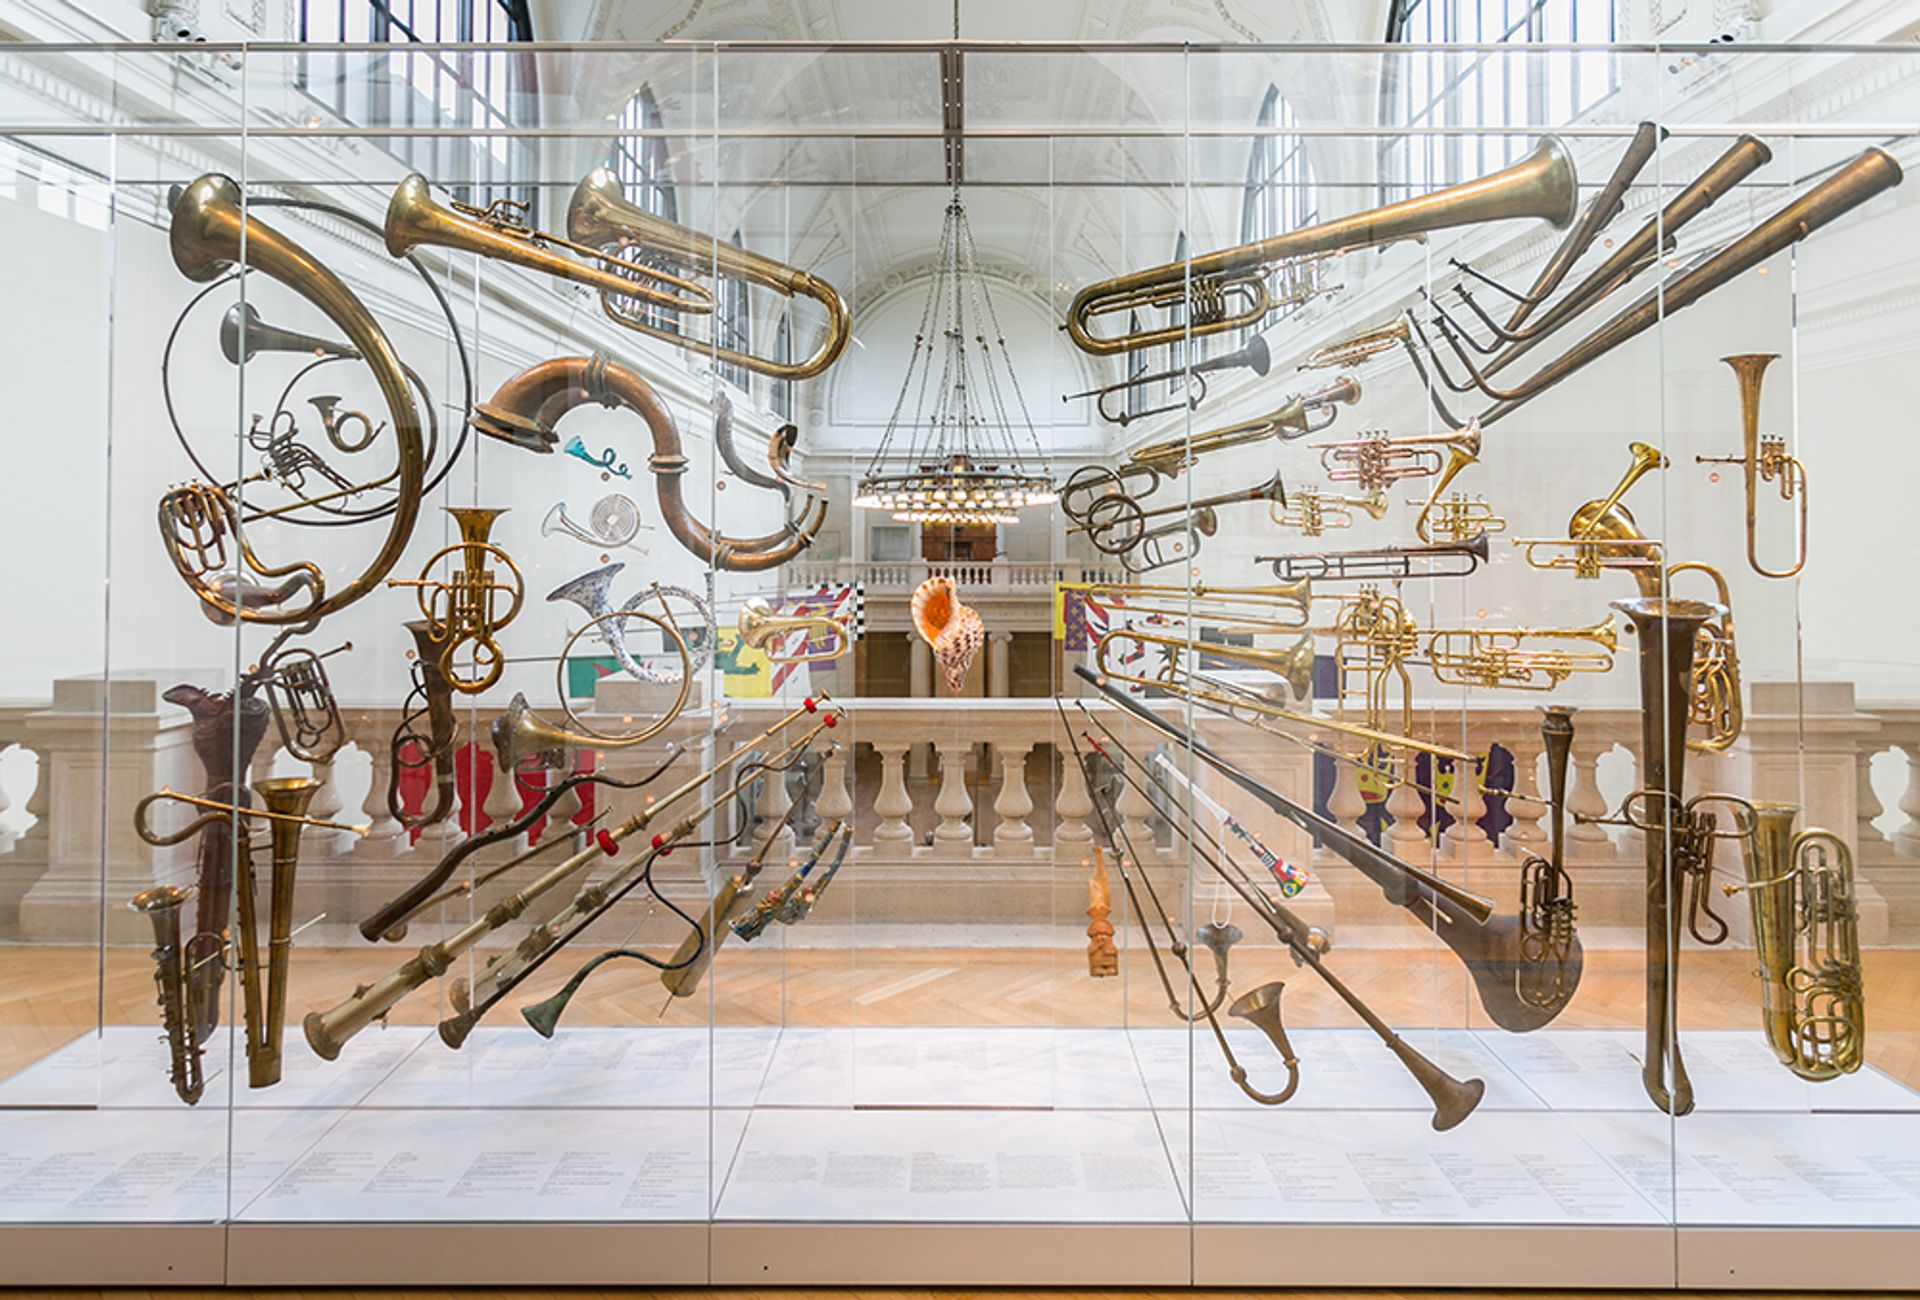 The Met's revamped music galleries include the display Fanfare, organised by the museum's associate curator of musical instruments,Bradley Strauchen-Scherer, which includes 74 brass instruments spanning two millennia with a conch as the centrepiece The Metropolitan Museum of Art